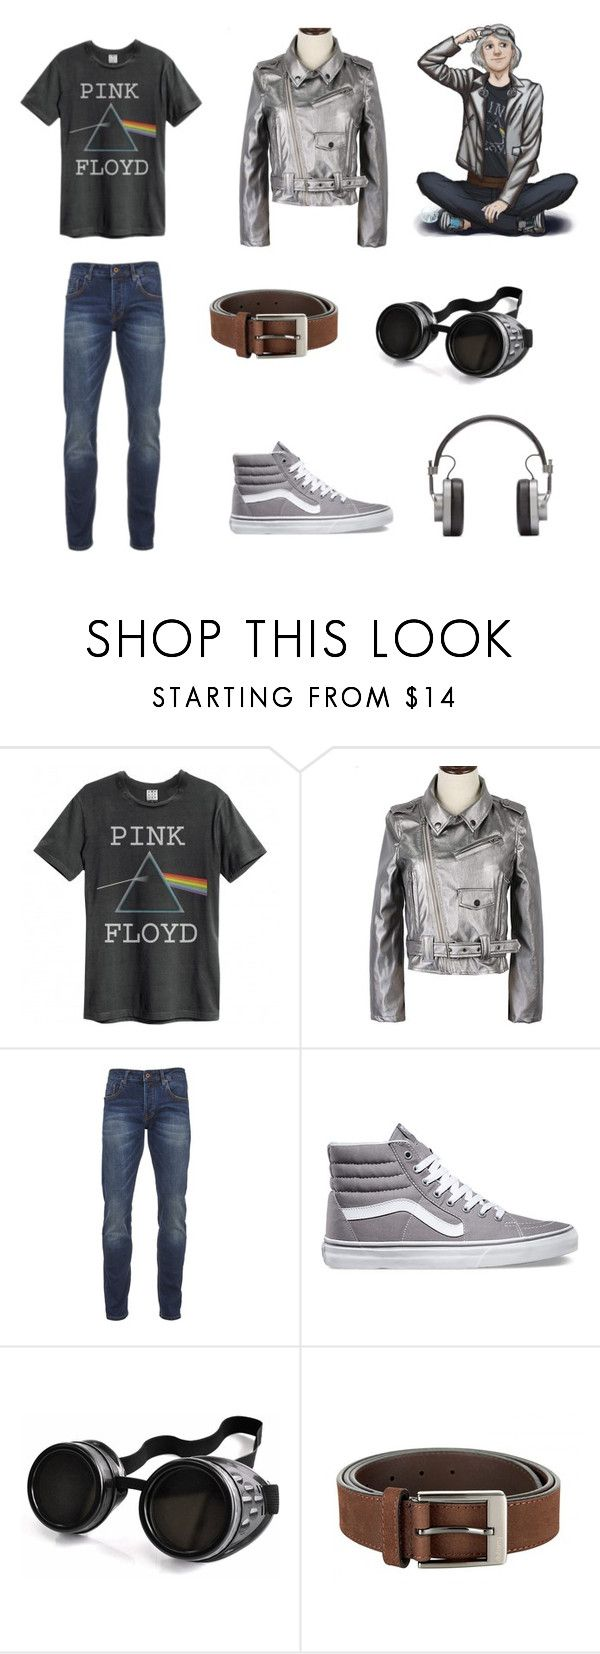 """""""Pietro (Peter) Maximoff"""" by mamarellanicole ❤ liked on Polyvore featuring Floyd, WithChic, Scotch & Soda, Vans, Poizen Industries, DUBARRY, Master & Dynamic, men's fashion and menswear"""